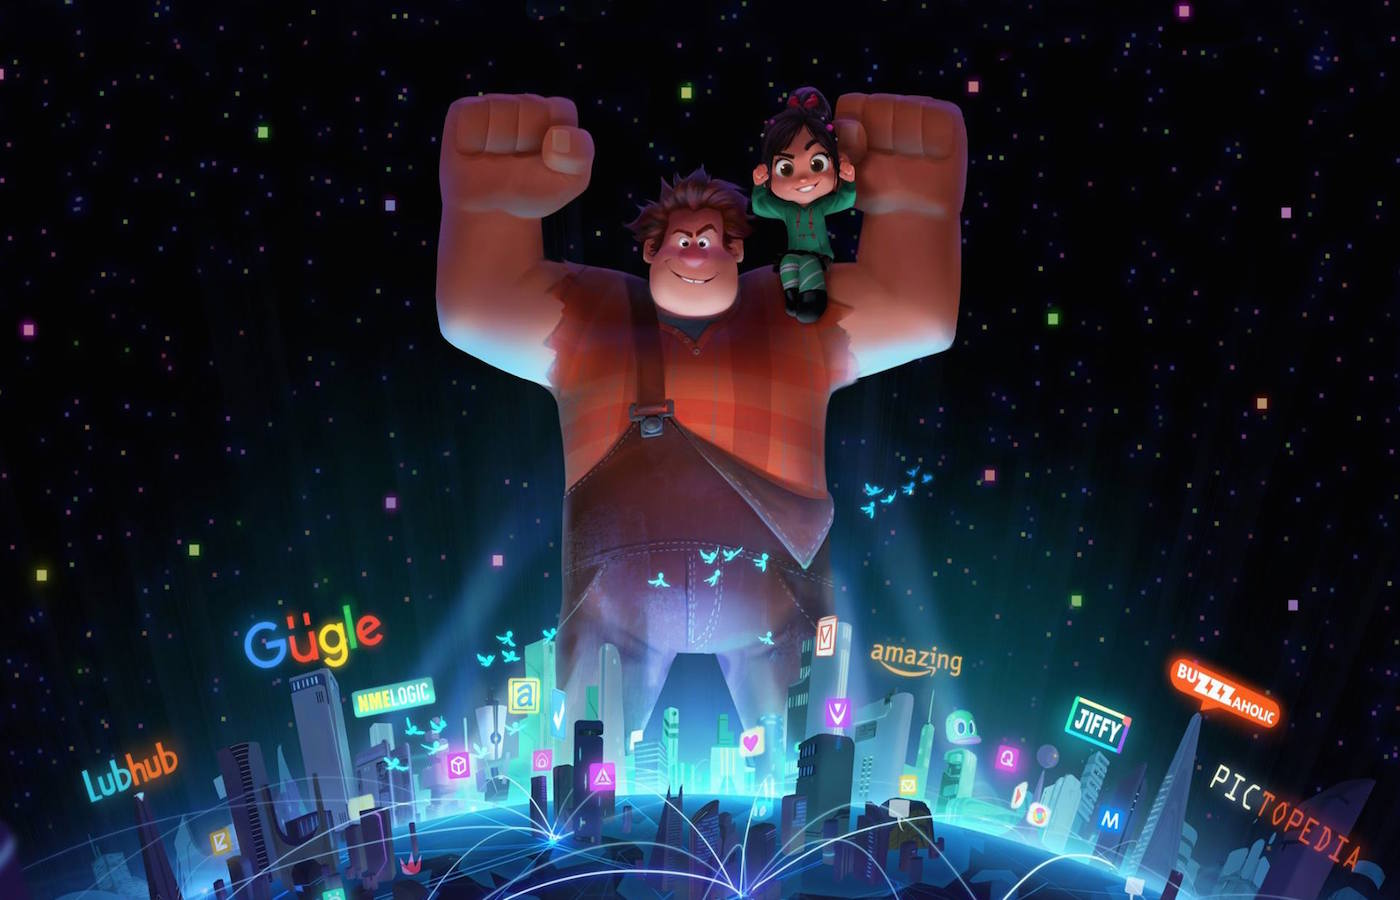 wreck-it-ralph-2-image1.jpg